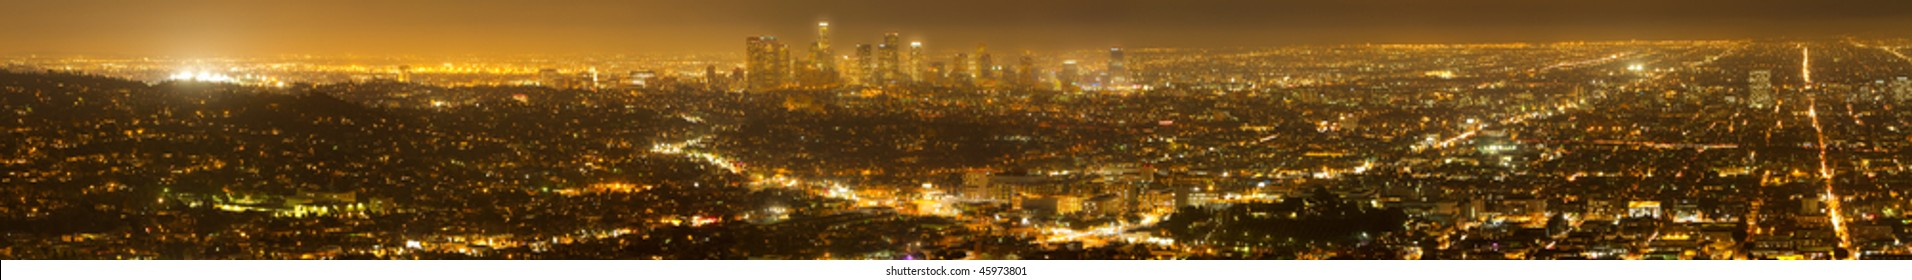 Wide angle panorama image of Los Angeles skyline and city at night.